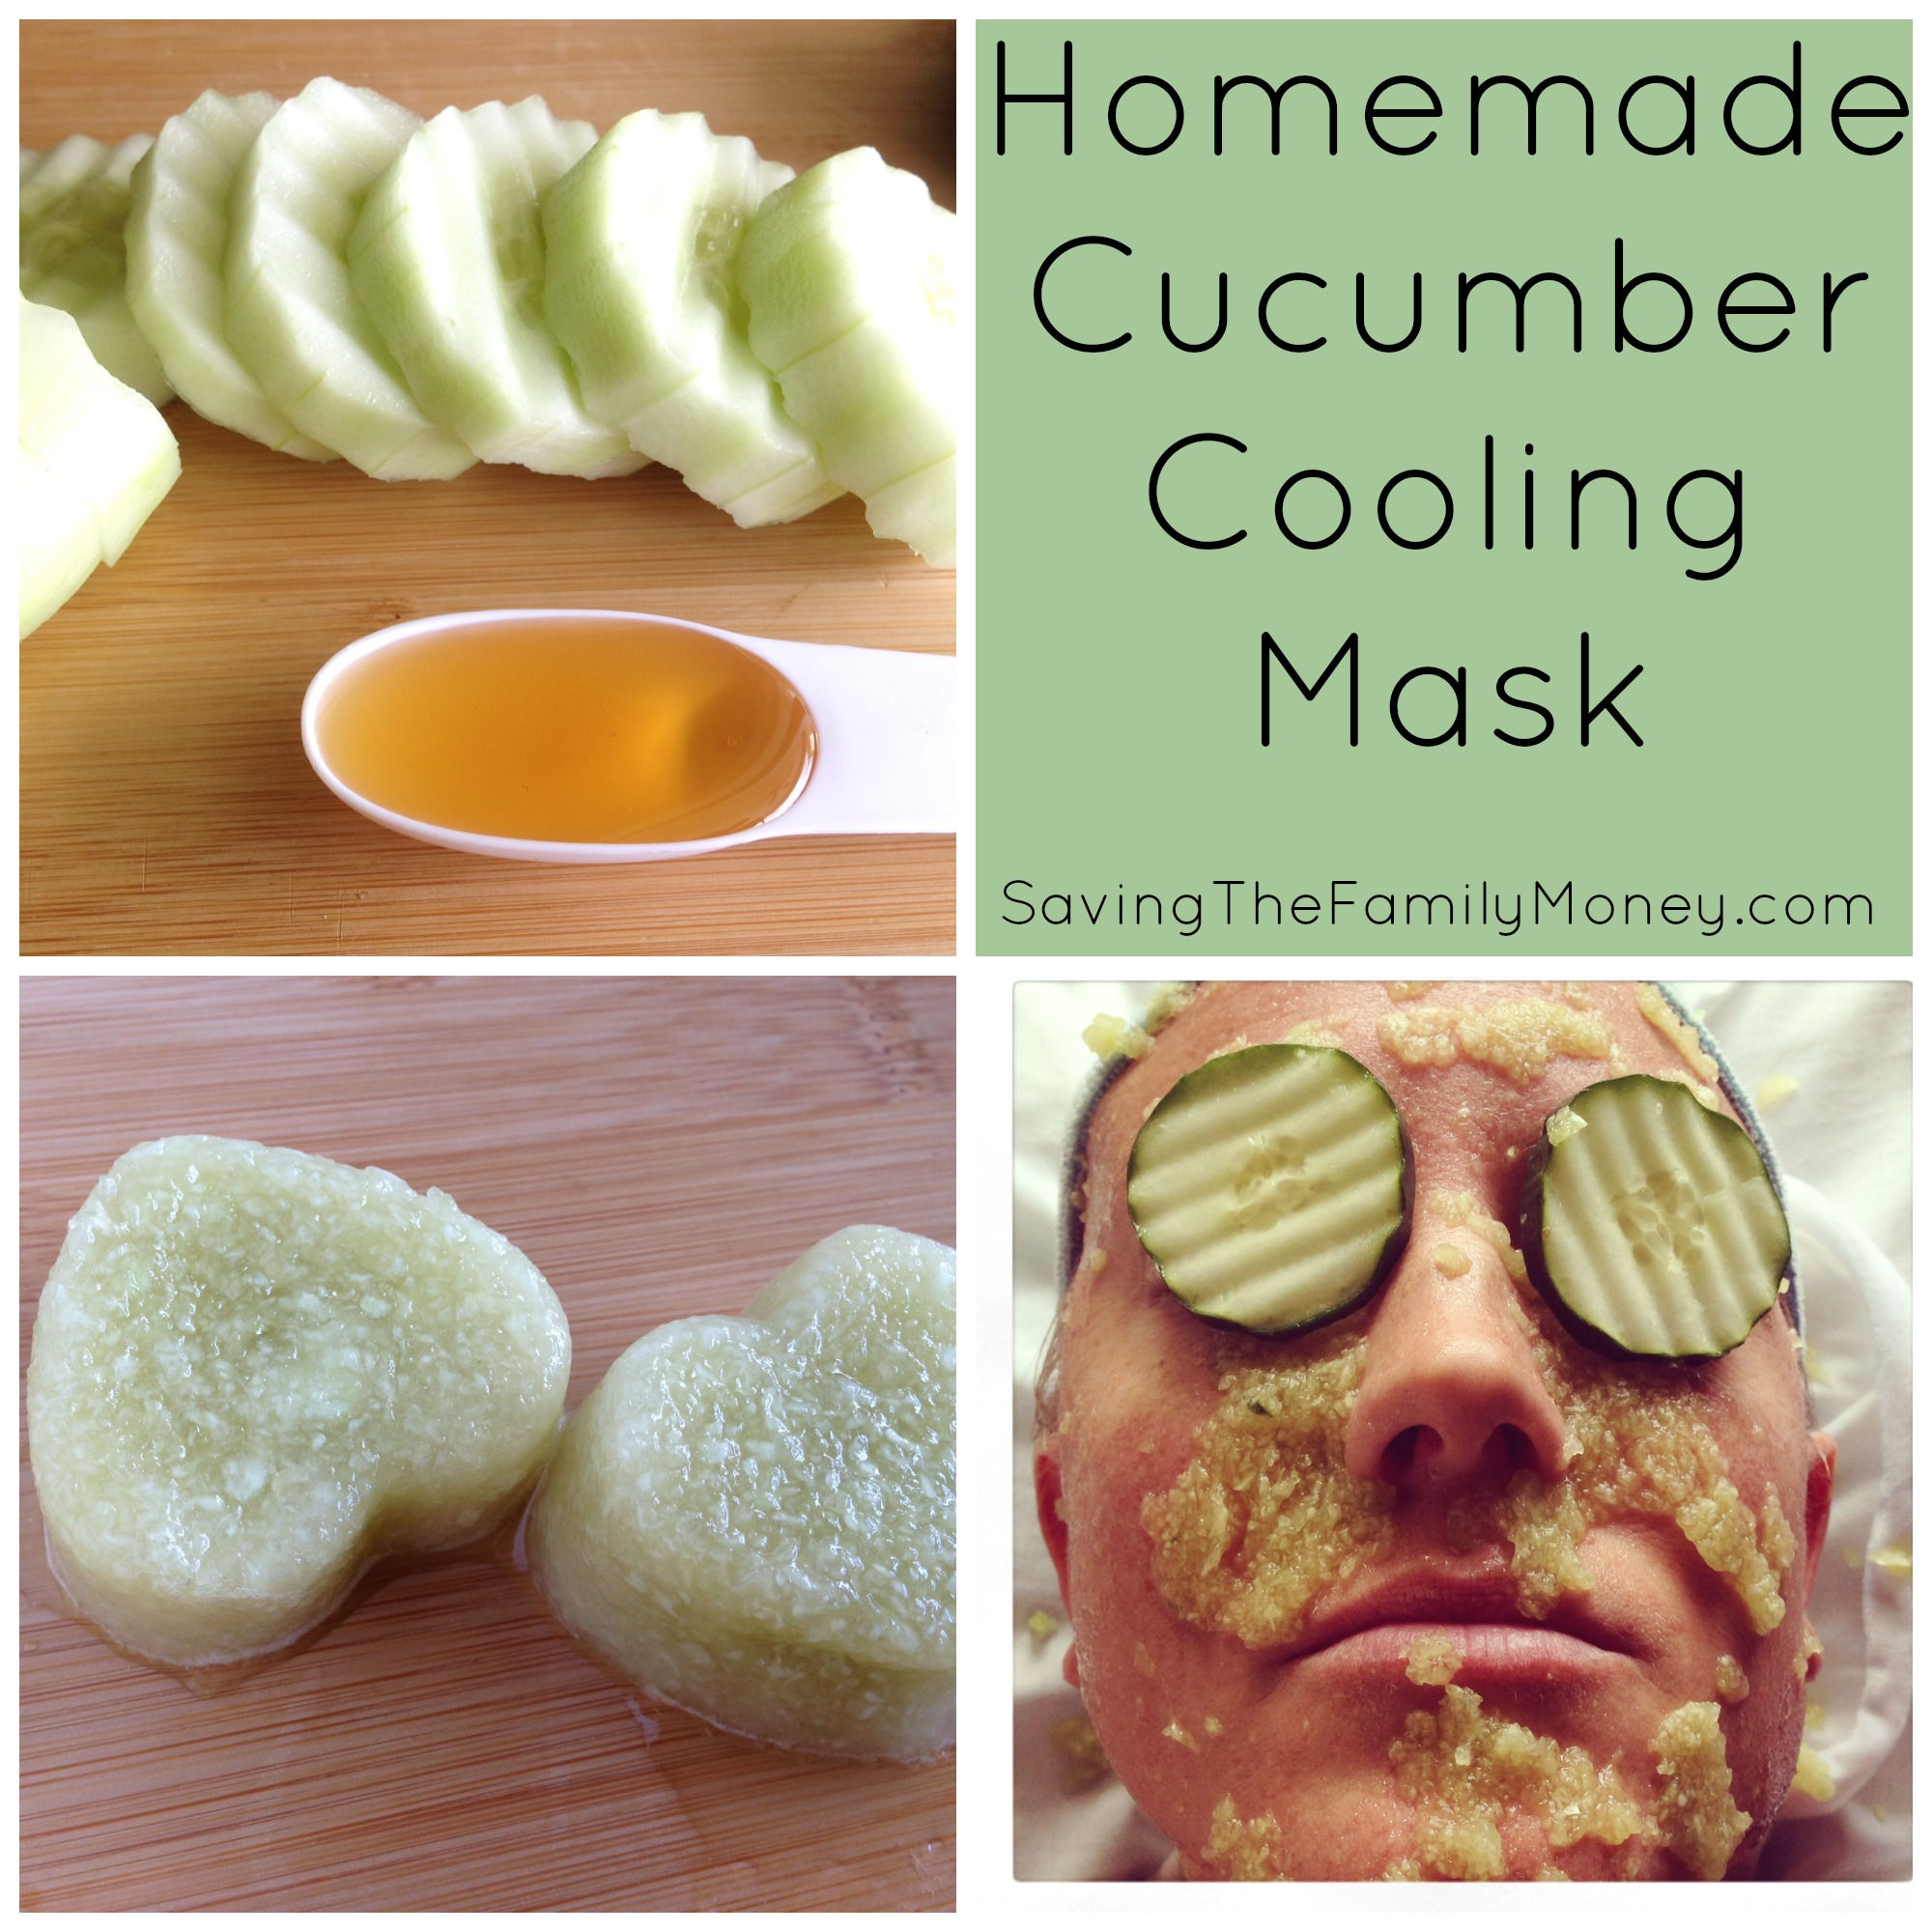 Saving Money On Beauty | Homemade Cucumber Cooling Mask